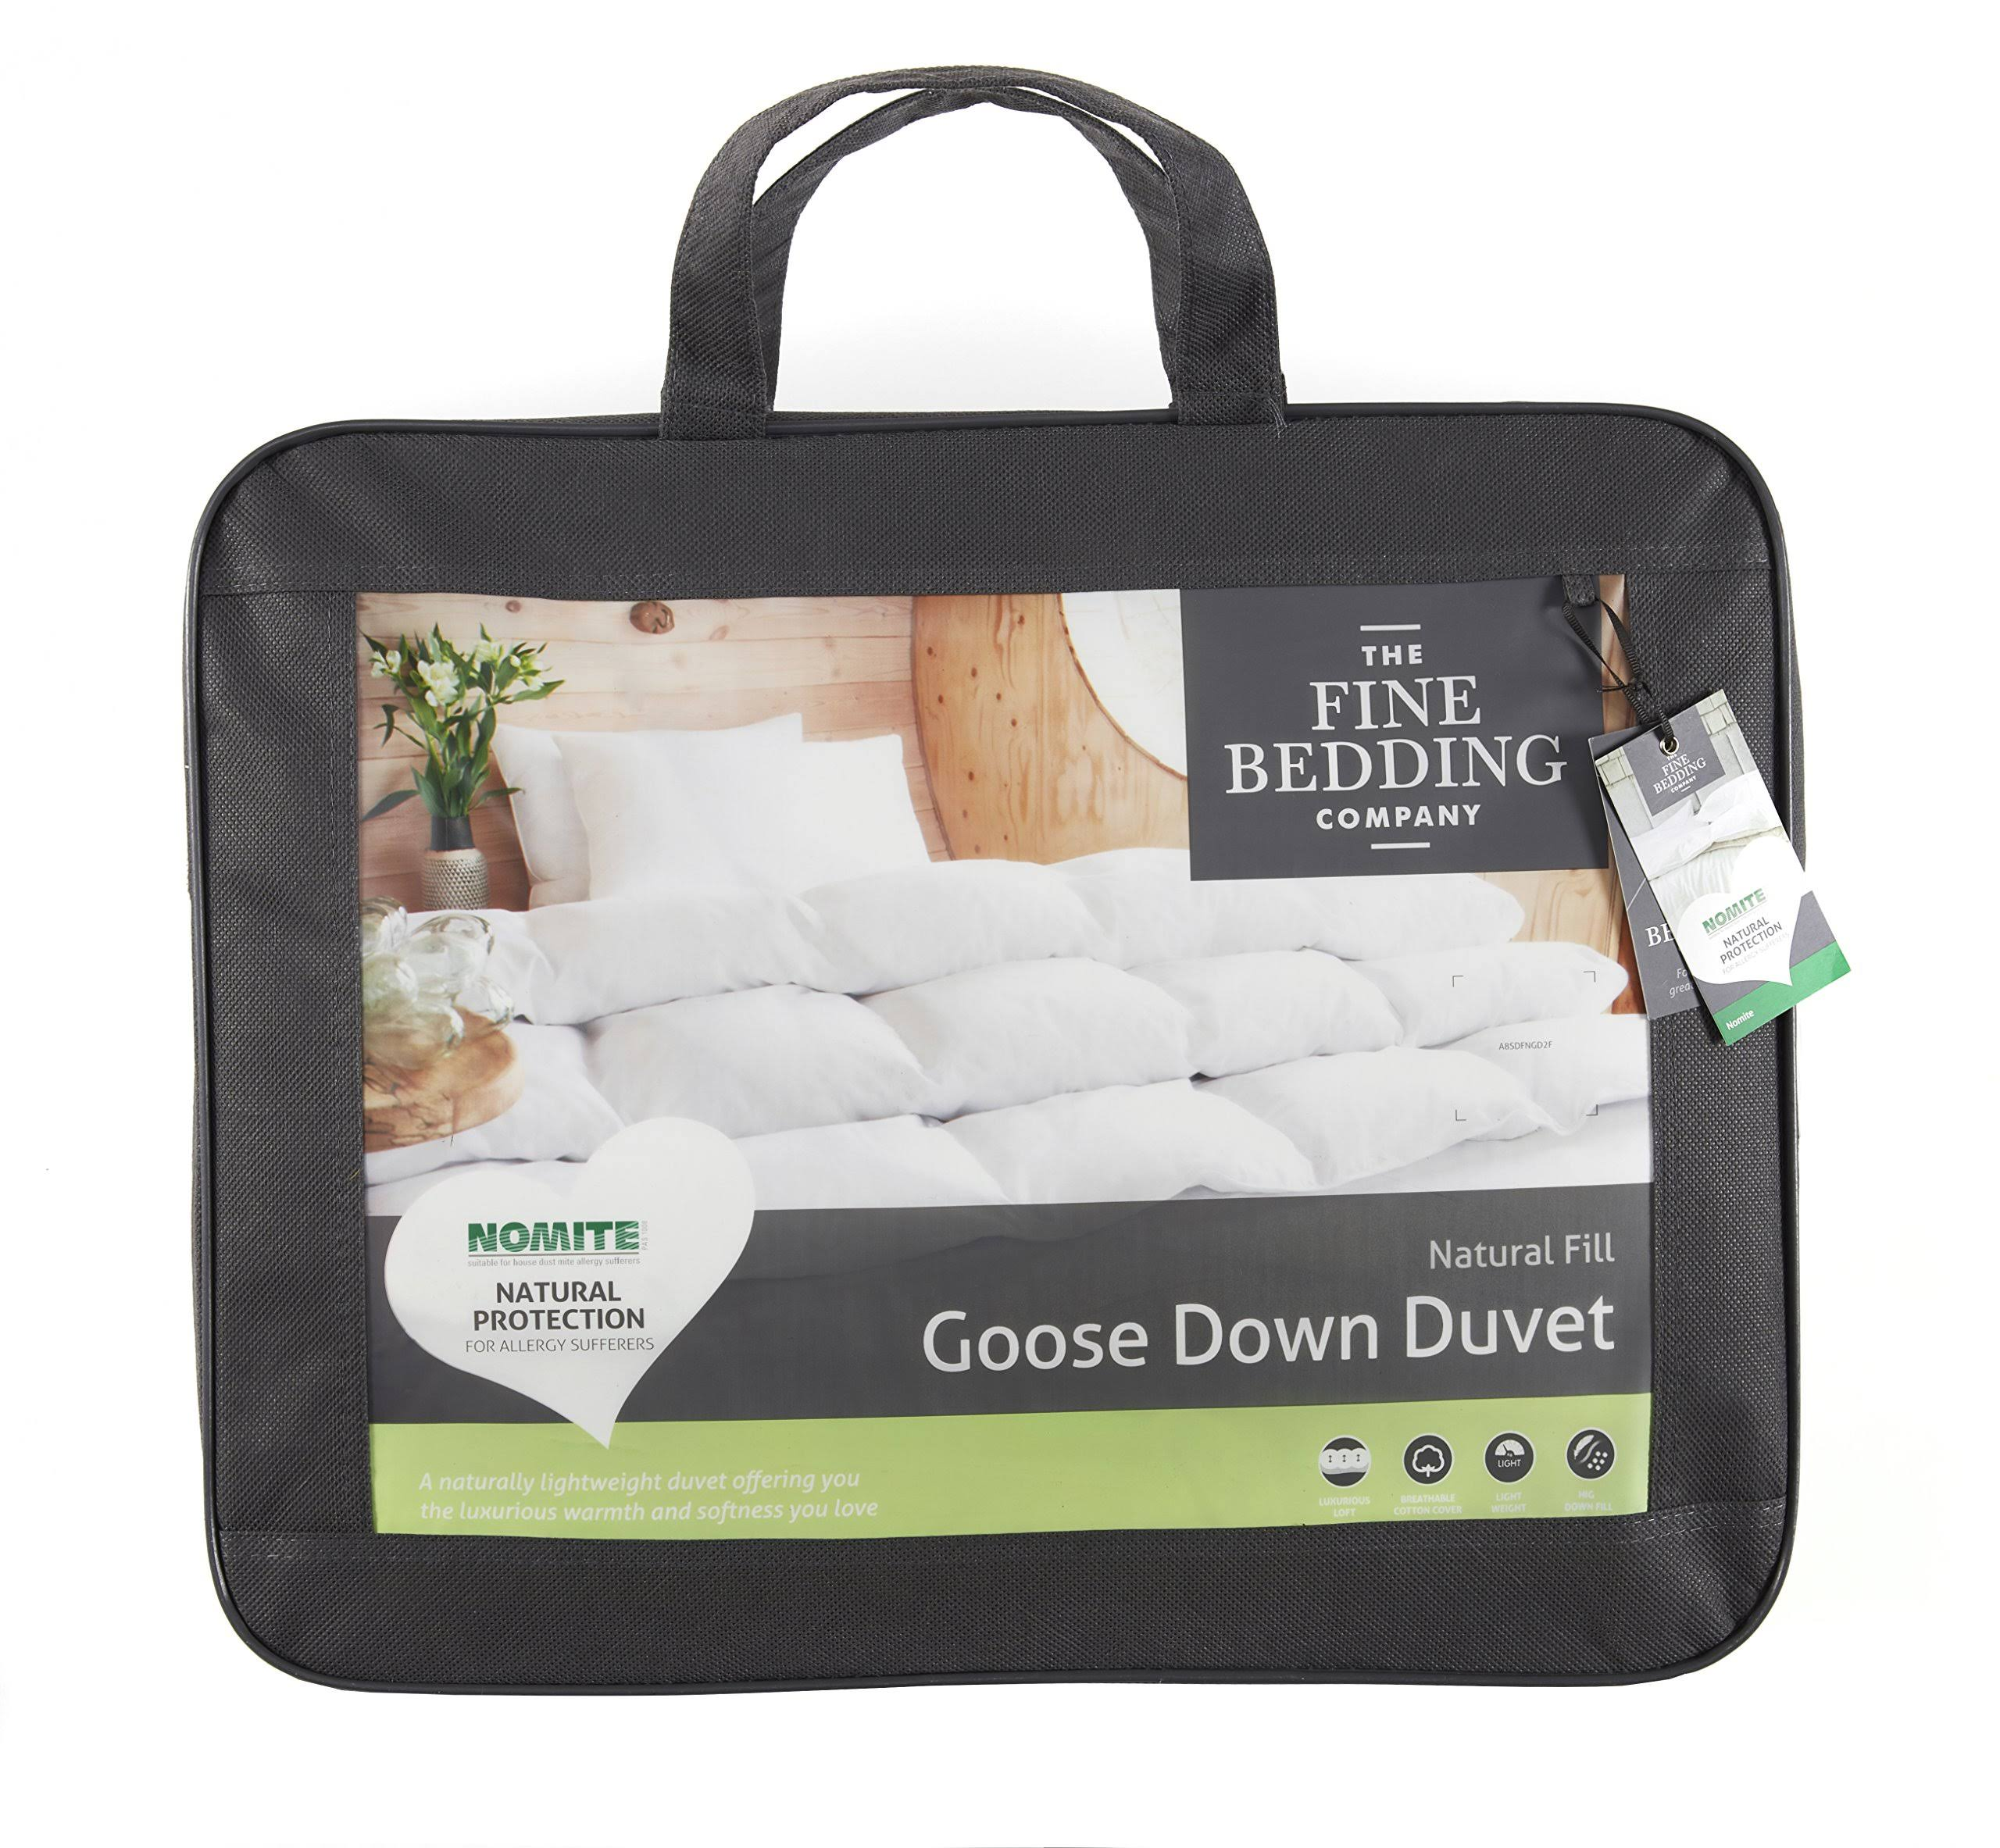 The Fine Bedding Company 60% Goose Down Duvet, 13.5 Tog